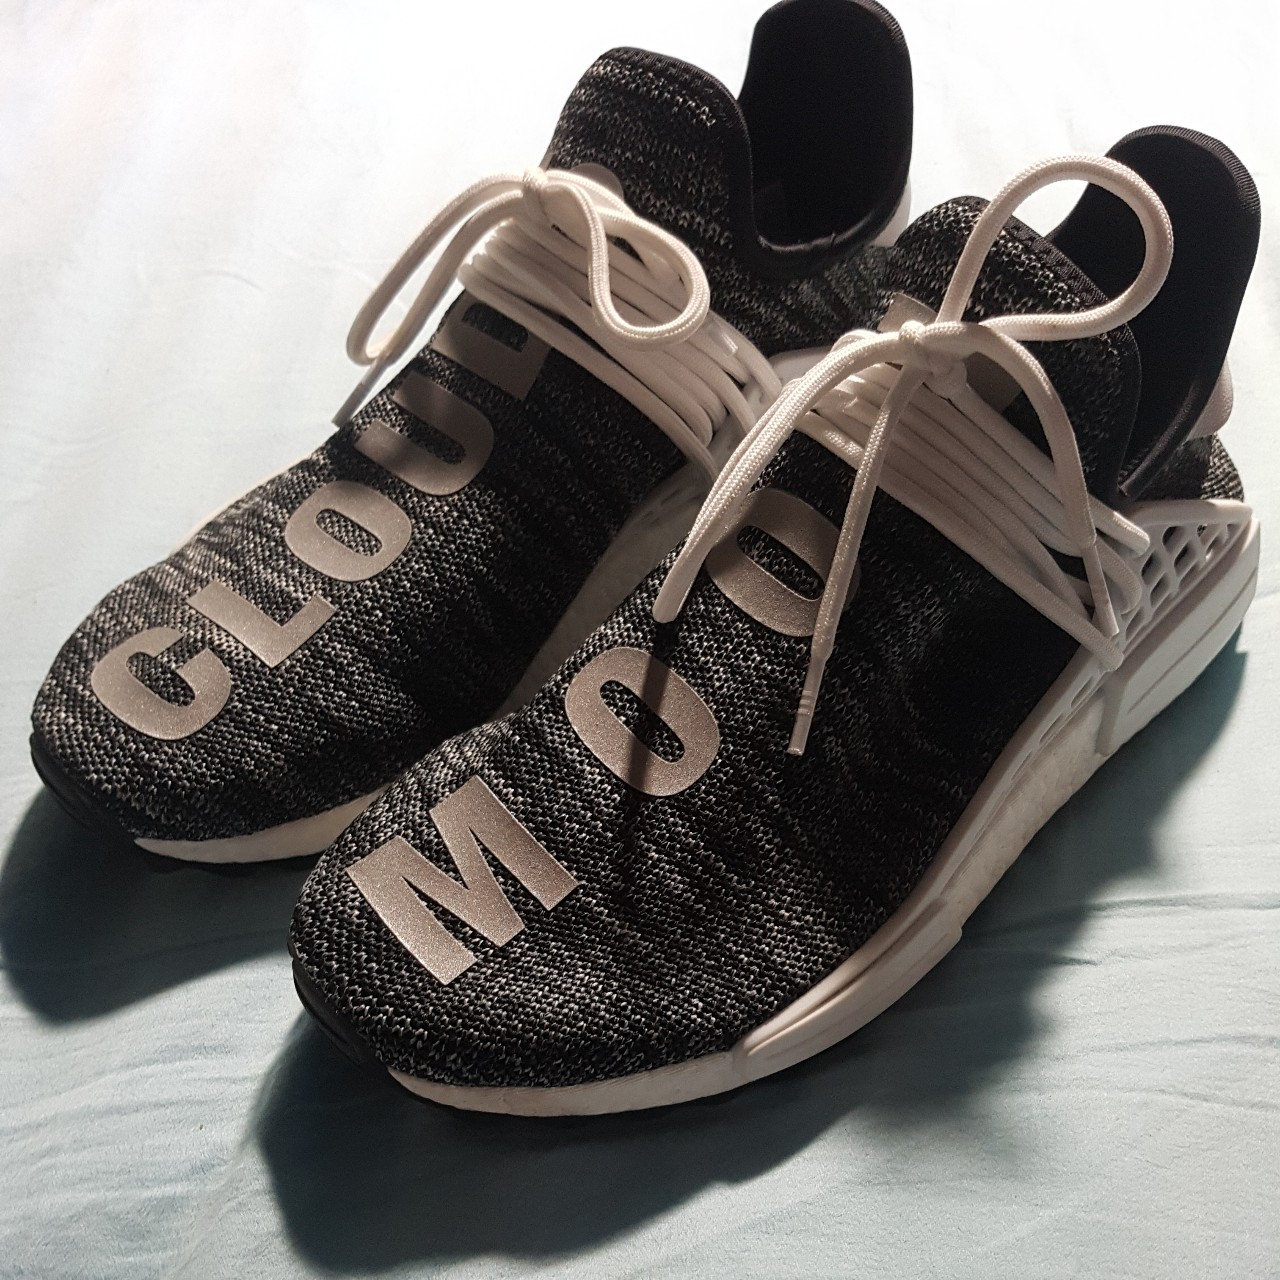 best website 705f6 1c2a0 Adidas x Pharrell Williams Human Race NMD Trail... - Depop